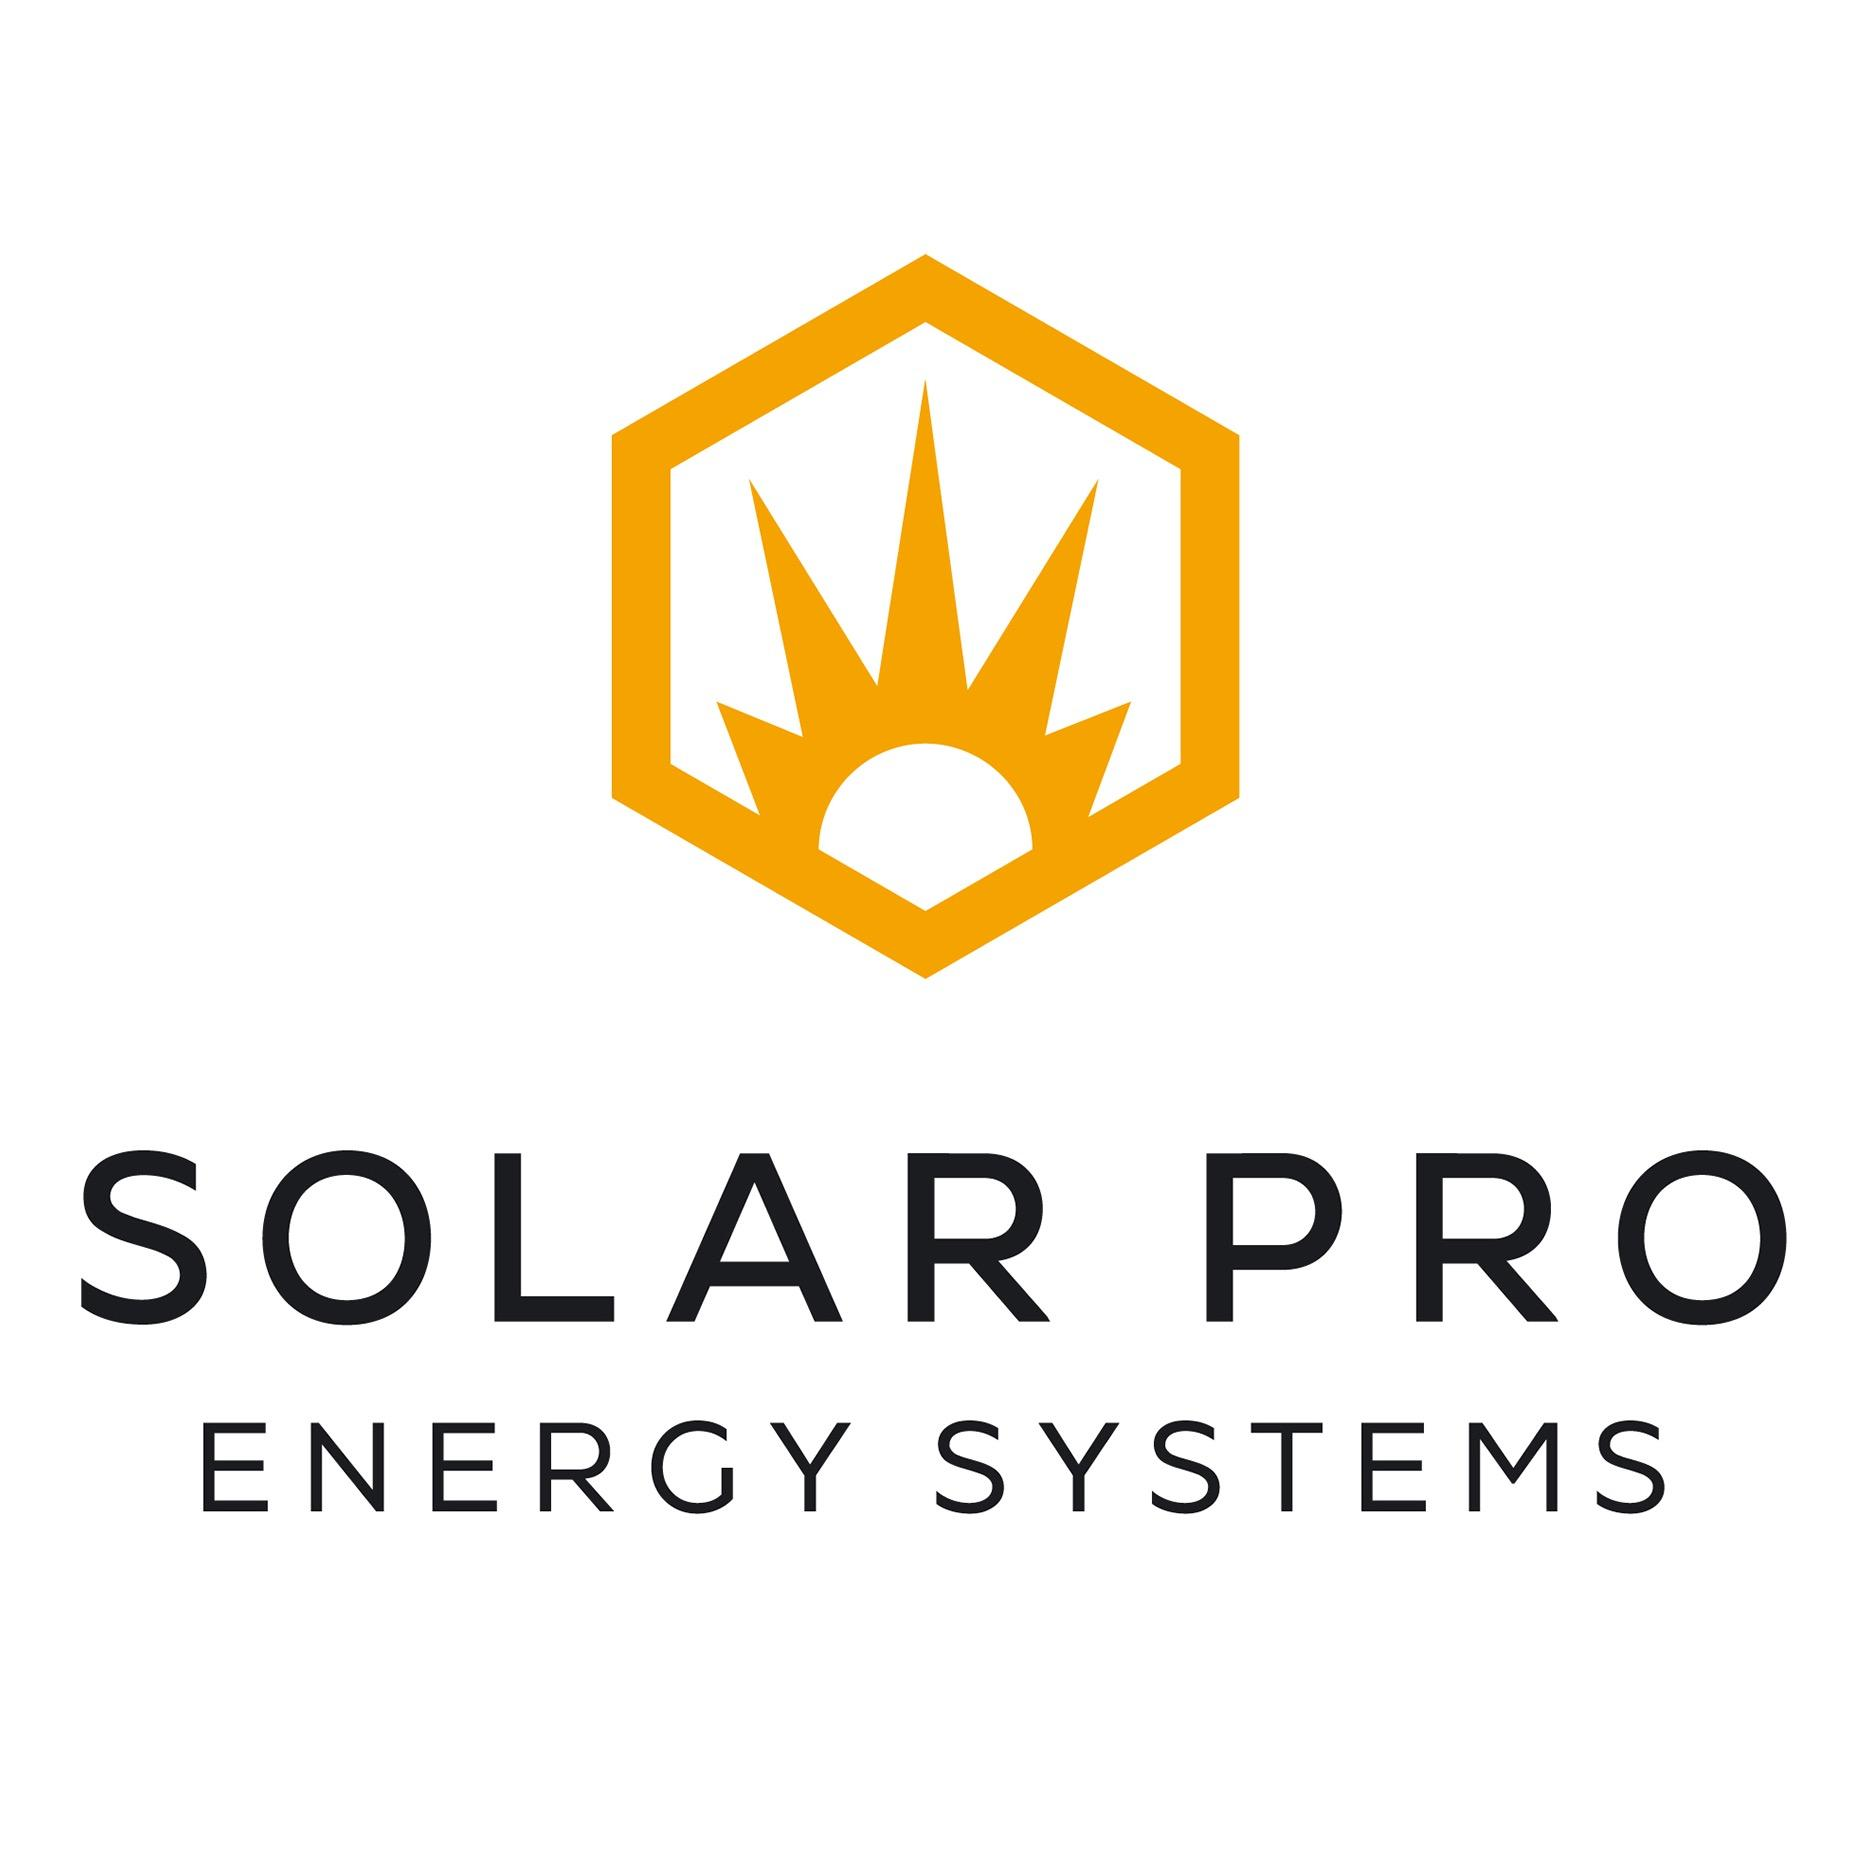 Solar Pro Energy Systems